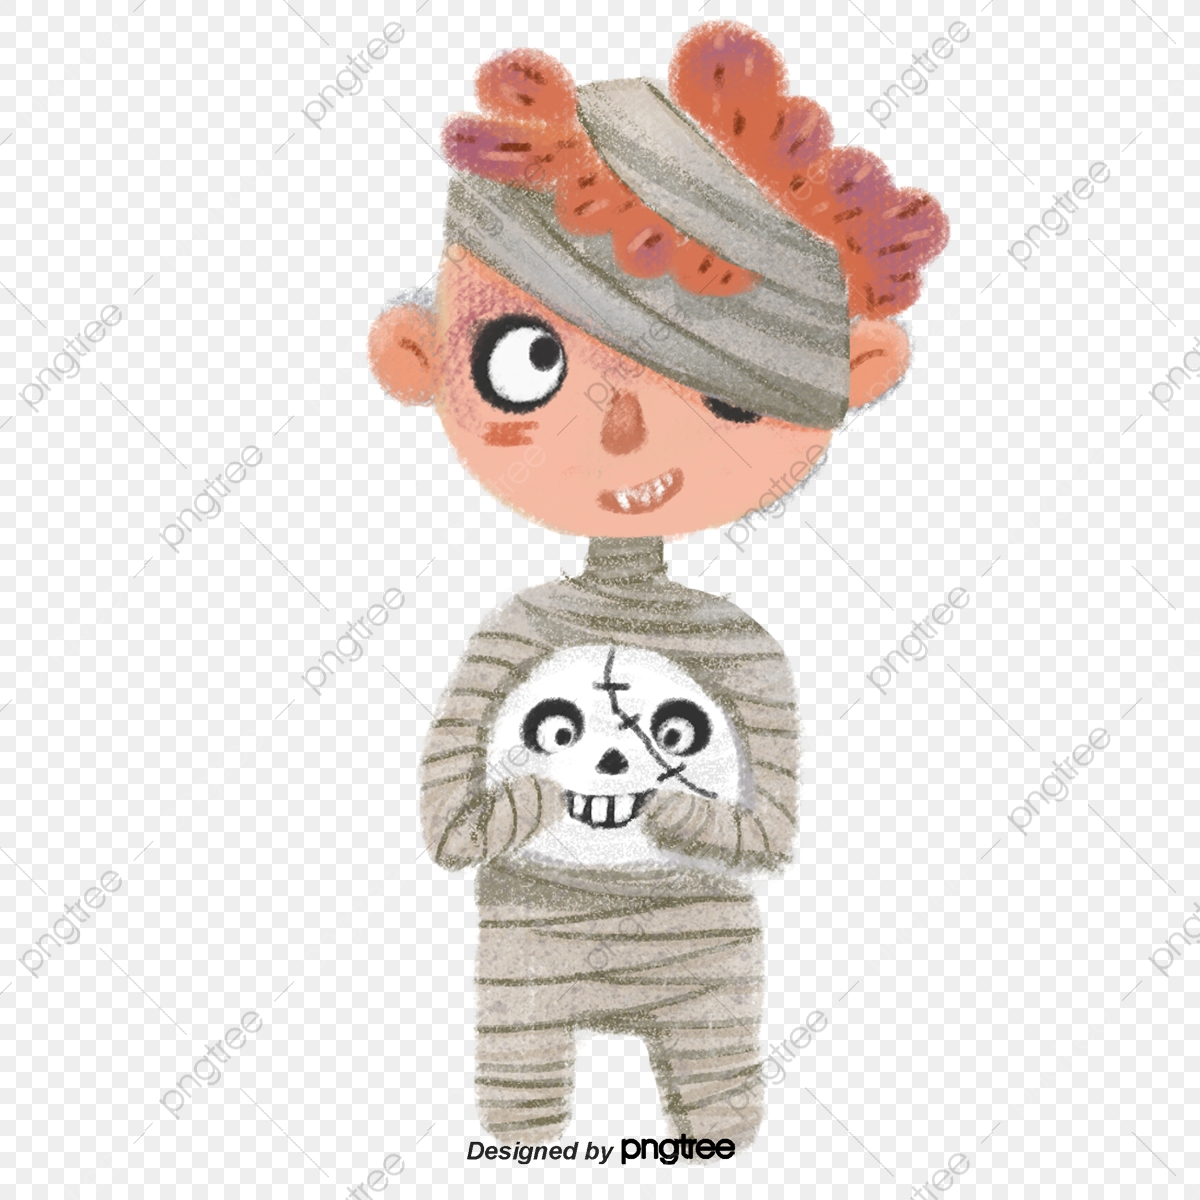 Boys With Bandages On Halloween Cartoons Halloween Cartoon Night Png Transparent Clipart Image And Psd File For Free Download